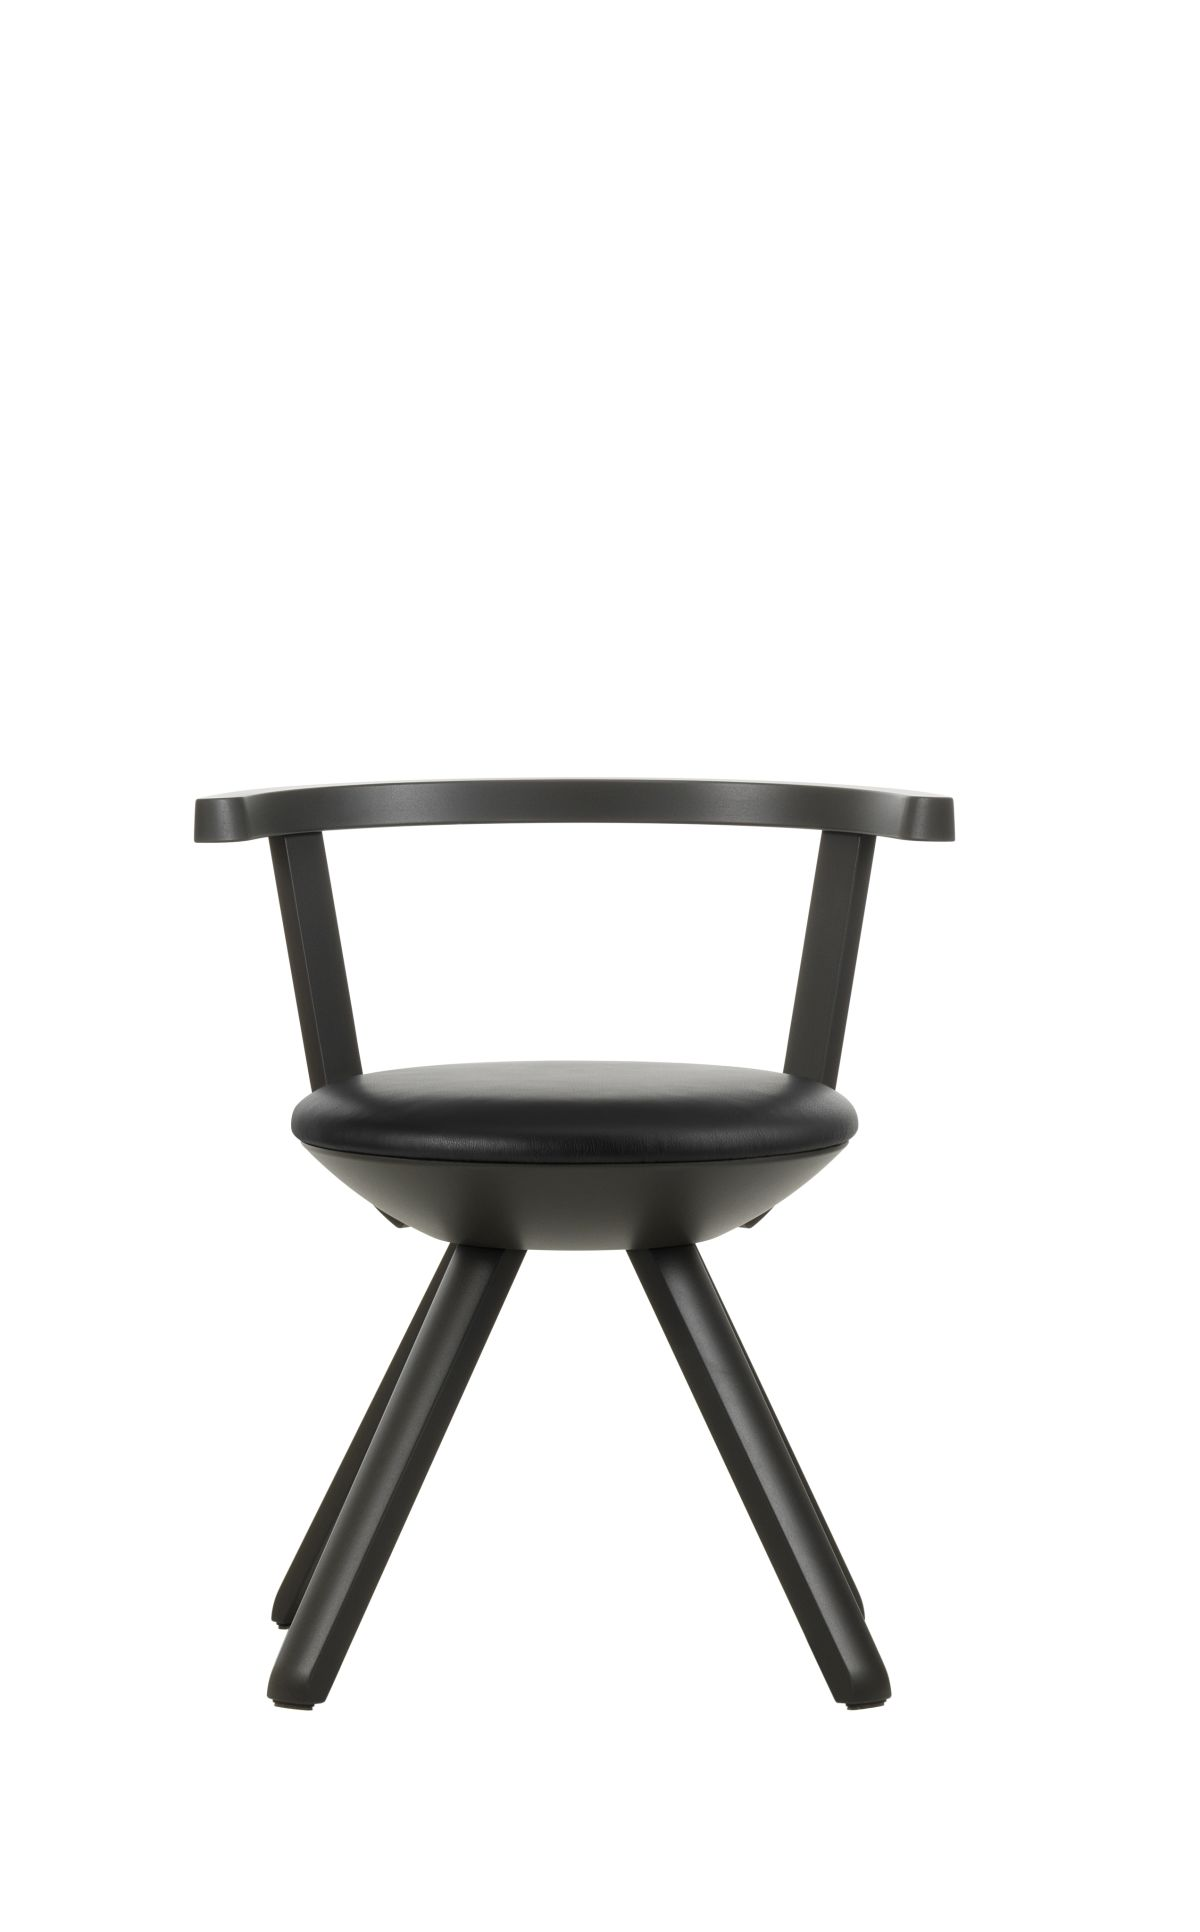 Rival-Chair-Kg001-Asphalt-Lacquer-Nero-Leather-Upholstery